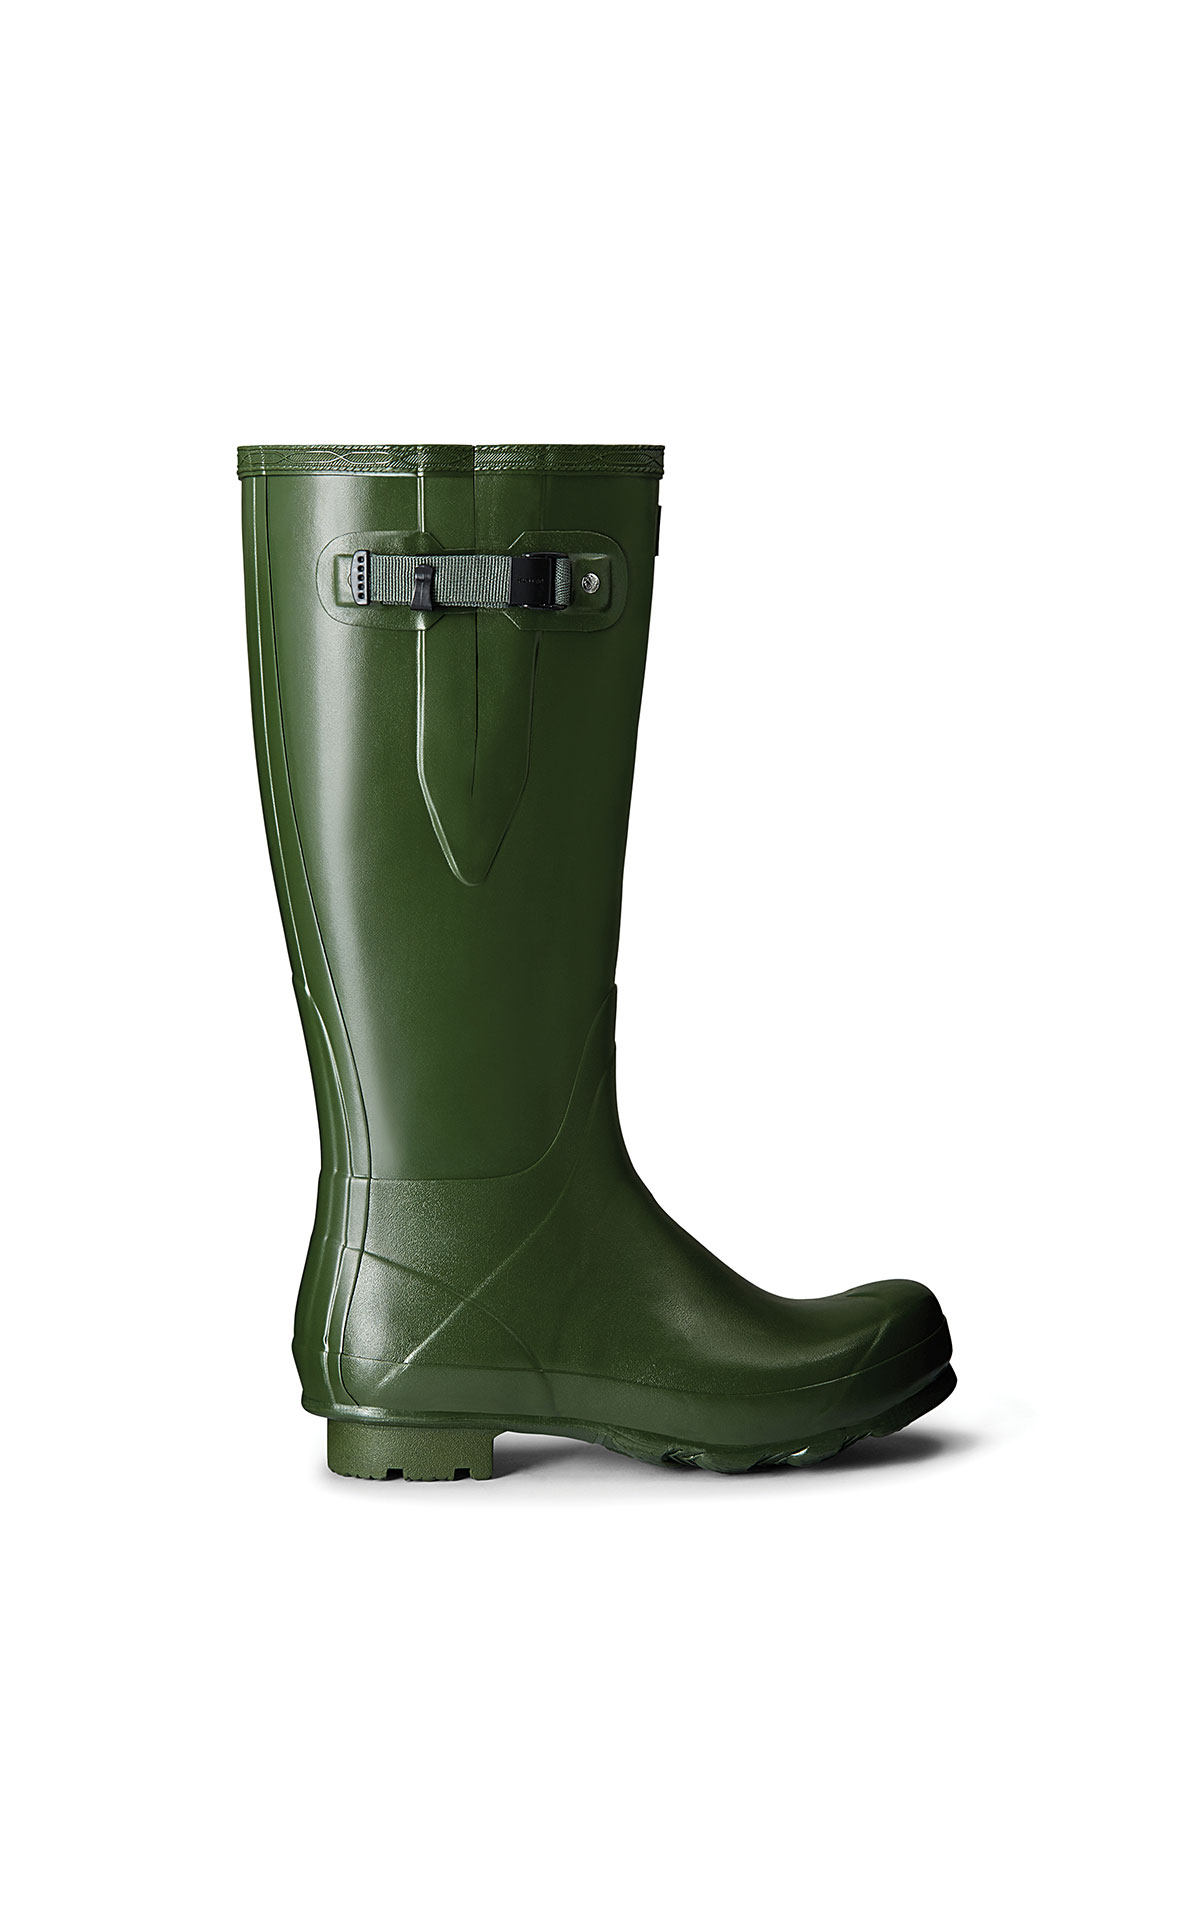 Hunter Men's Norris field adjustable boot from Bicester Village